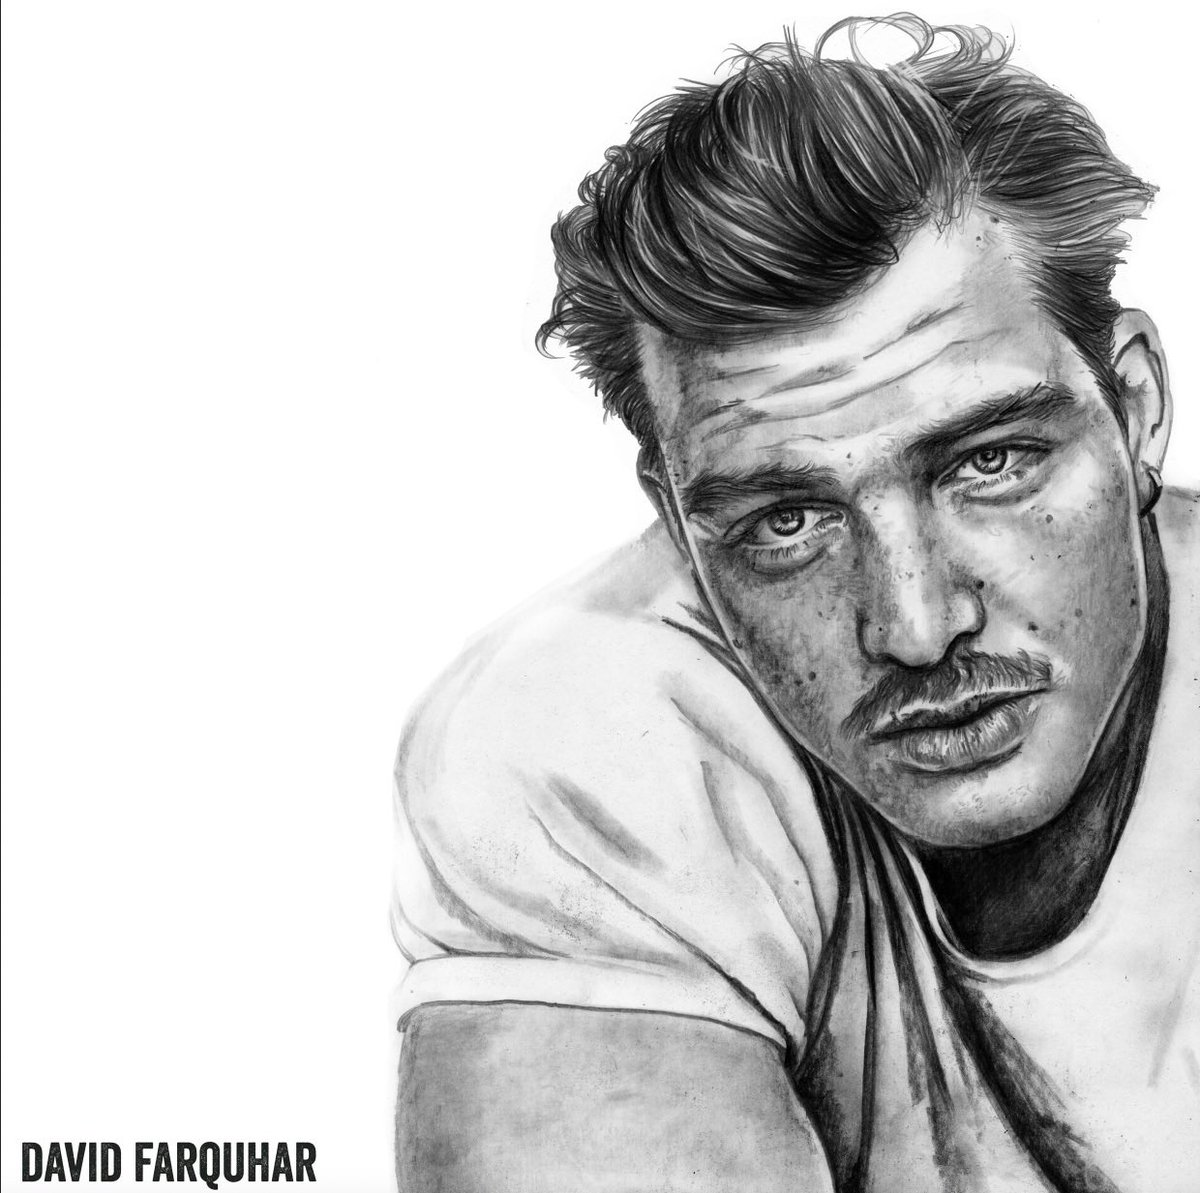 David, Pencil Drawing 2020. Based on a photograph of actor David Schuetter by Max Sonnenschein #pencil #artist  #instadraw #lifedrawing #draw #portrait #traditionalart #design #sketch #lines #linework #sketchaday #daily #instadaily #textures #artdaily  #paper #pen #davidschuetterpic.twitter.com/L4nbOAAG9j